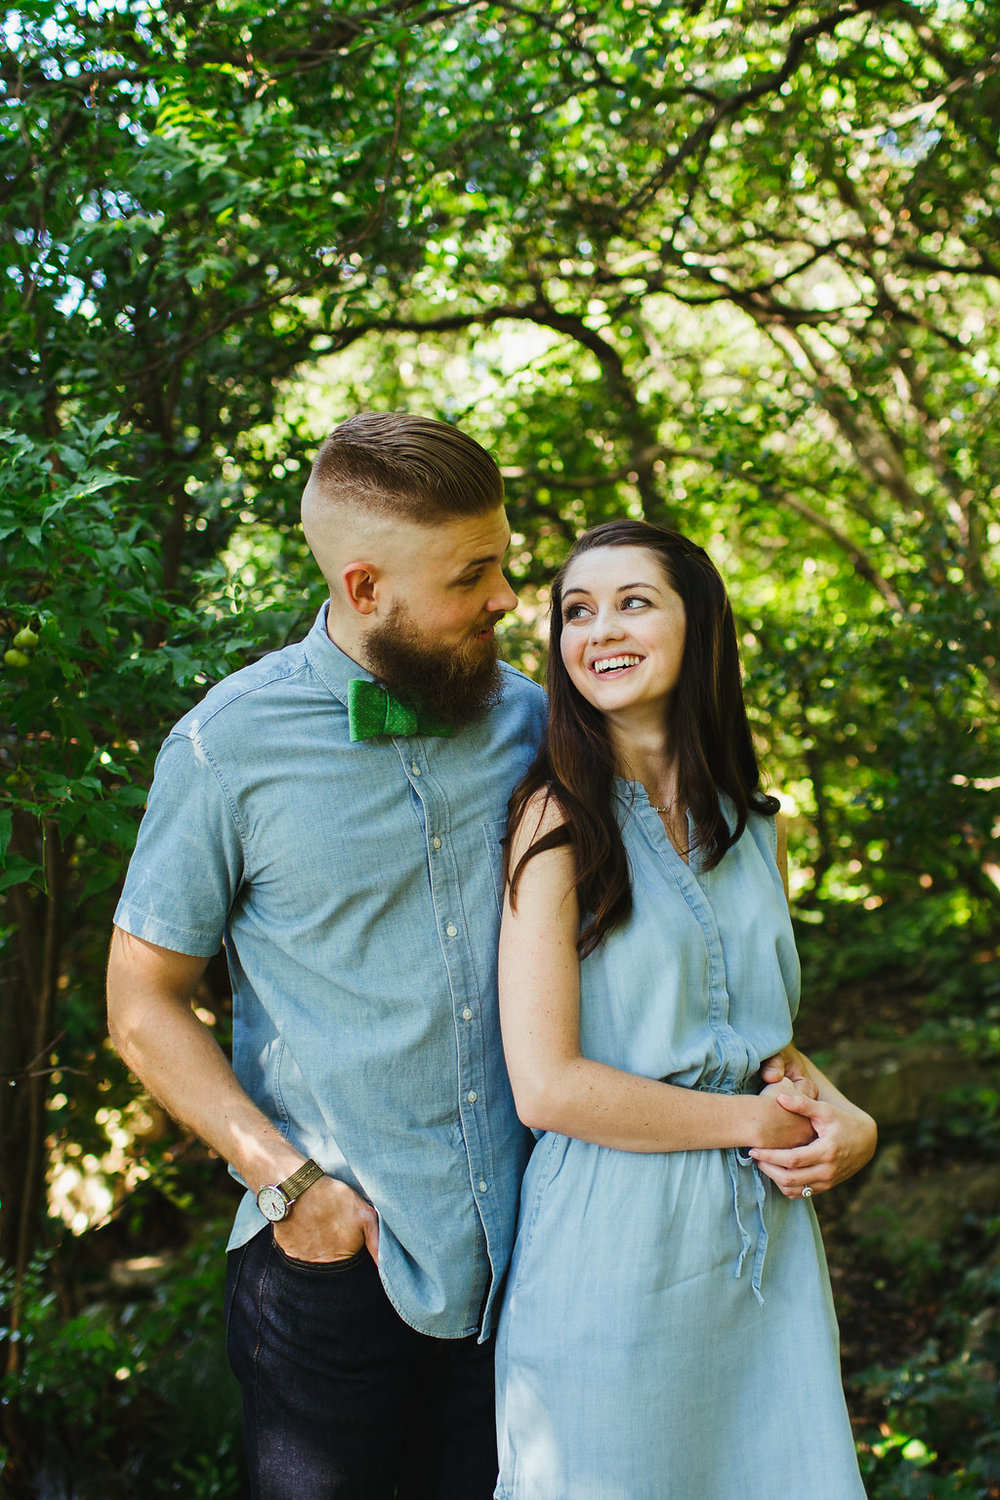 Paige-Newton-Photography-Zilker-Botanical-Gardens-Engagement-Session0007.jpg